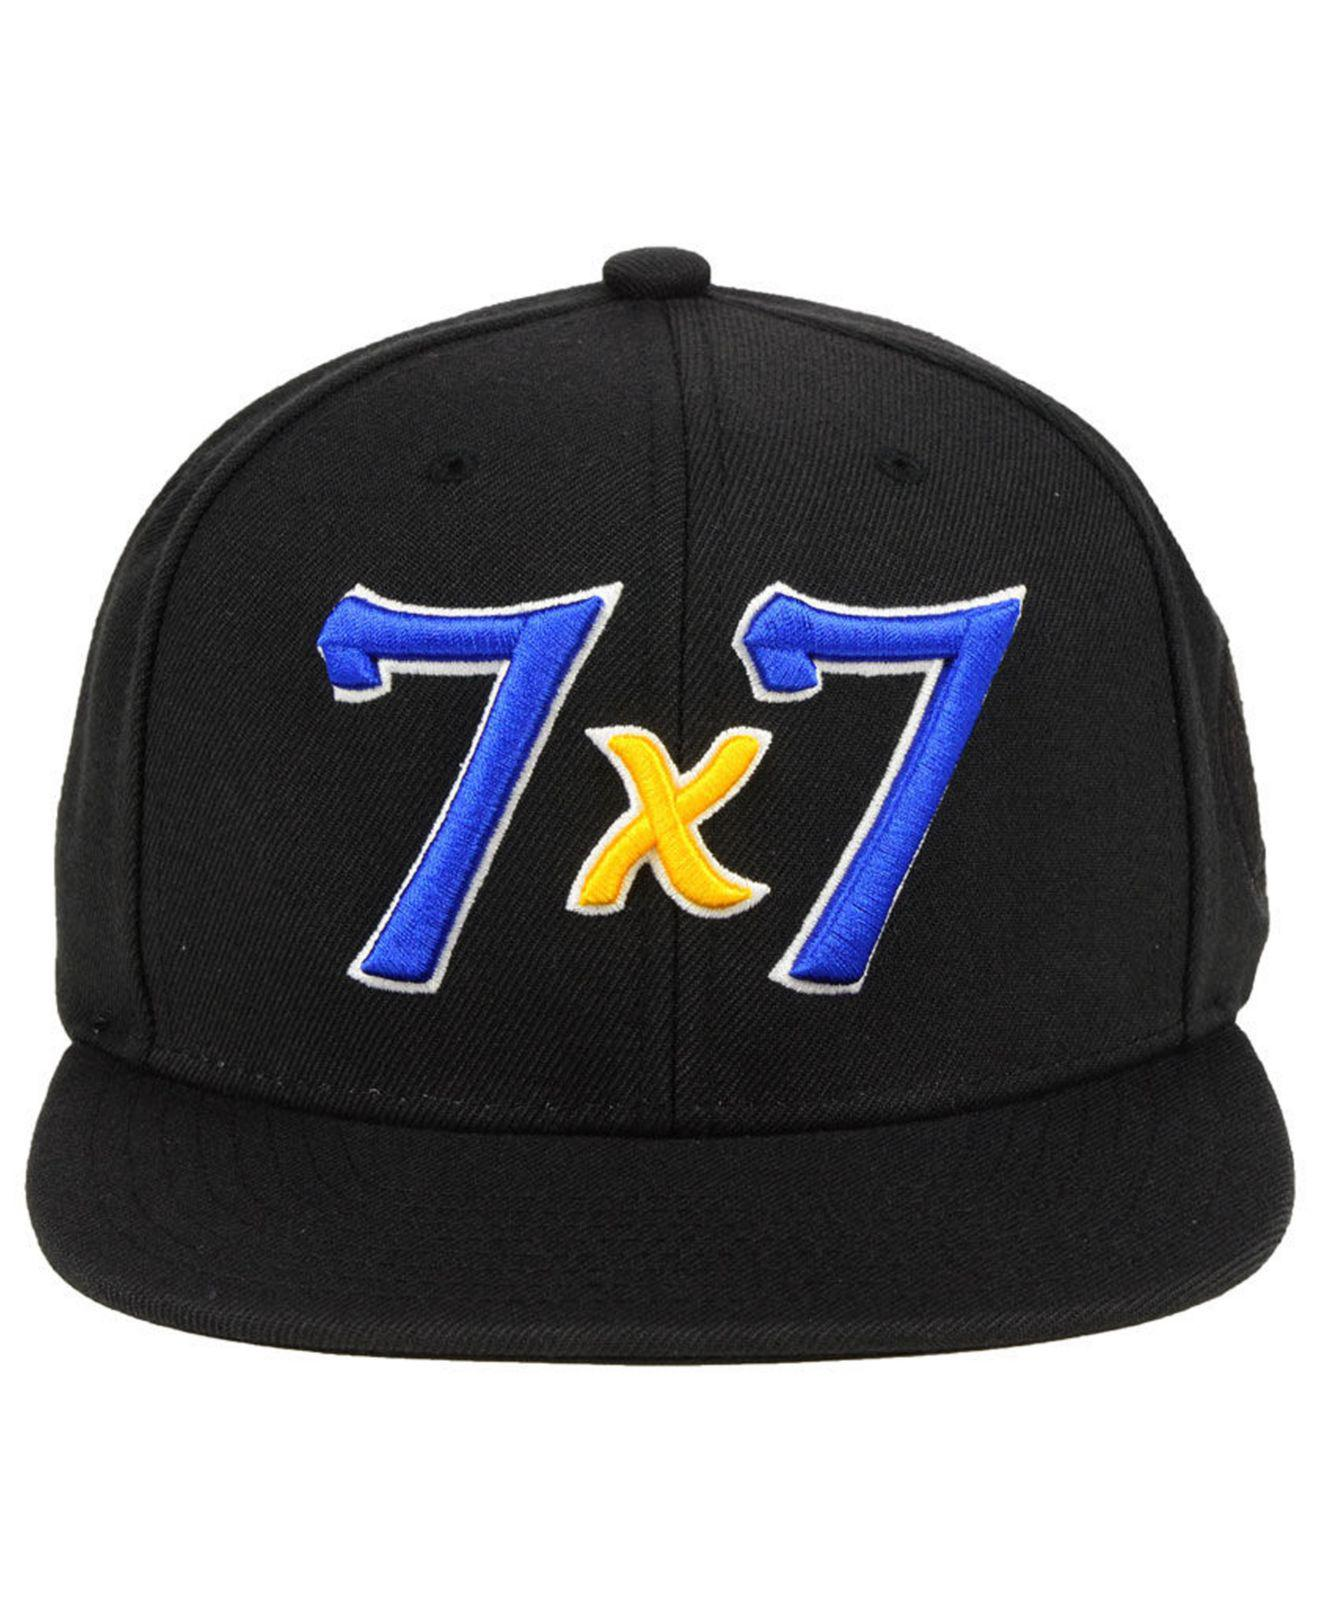 c46988be511 Lyst - Mitchell   Ness Golden State Warriors Town Snapback Cap in Black for  Men